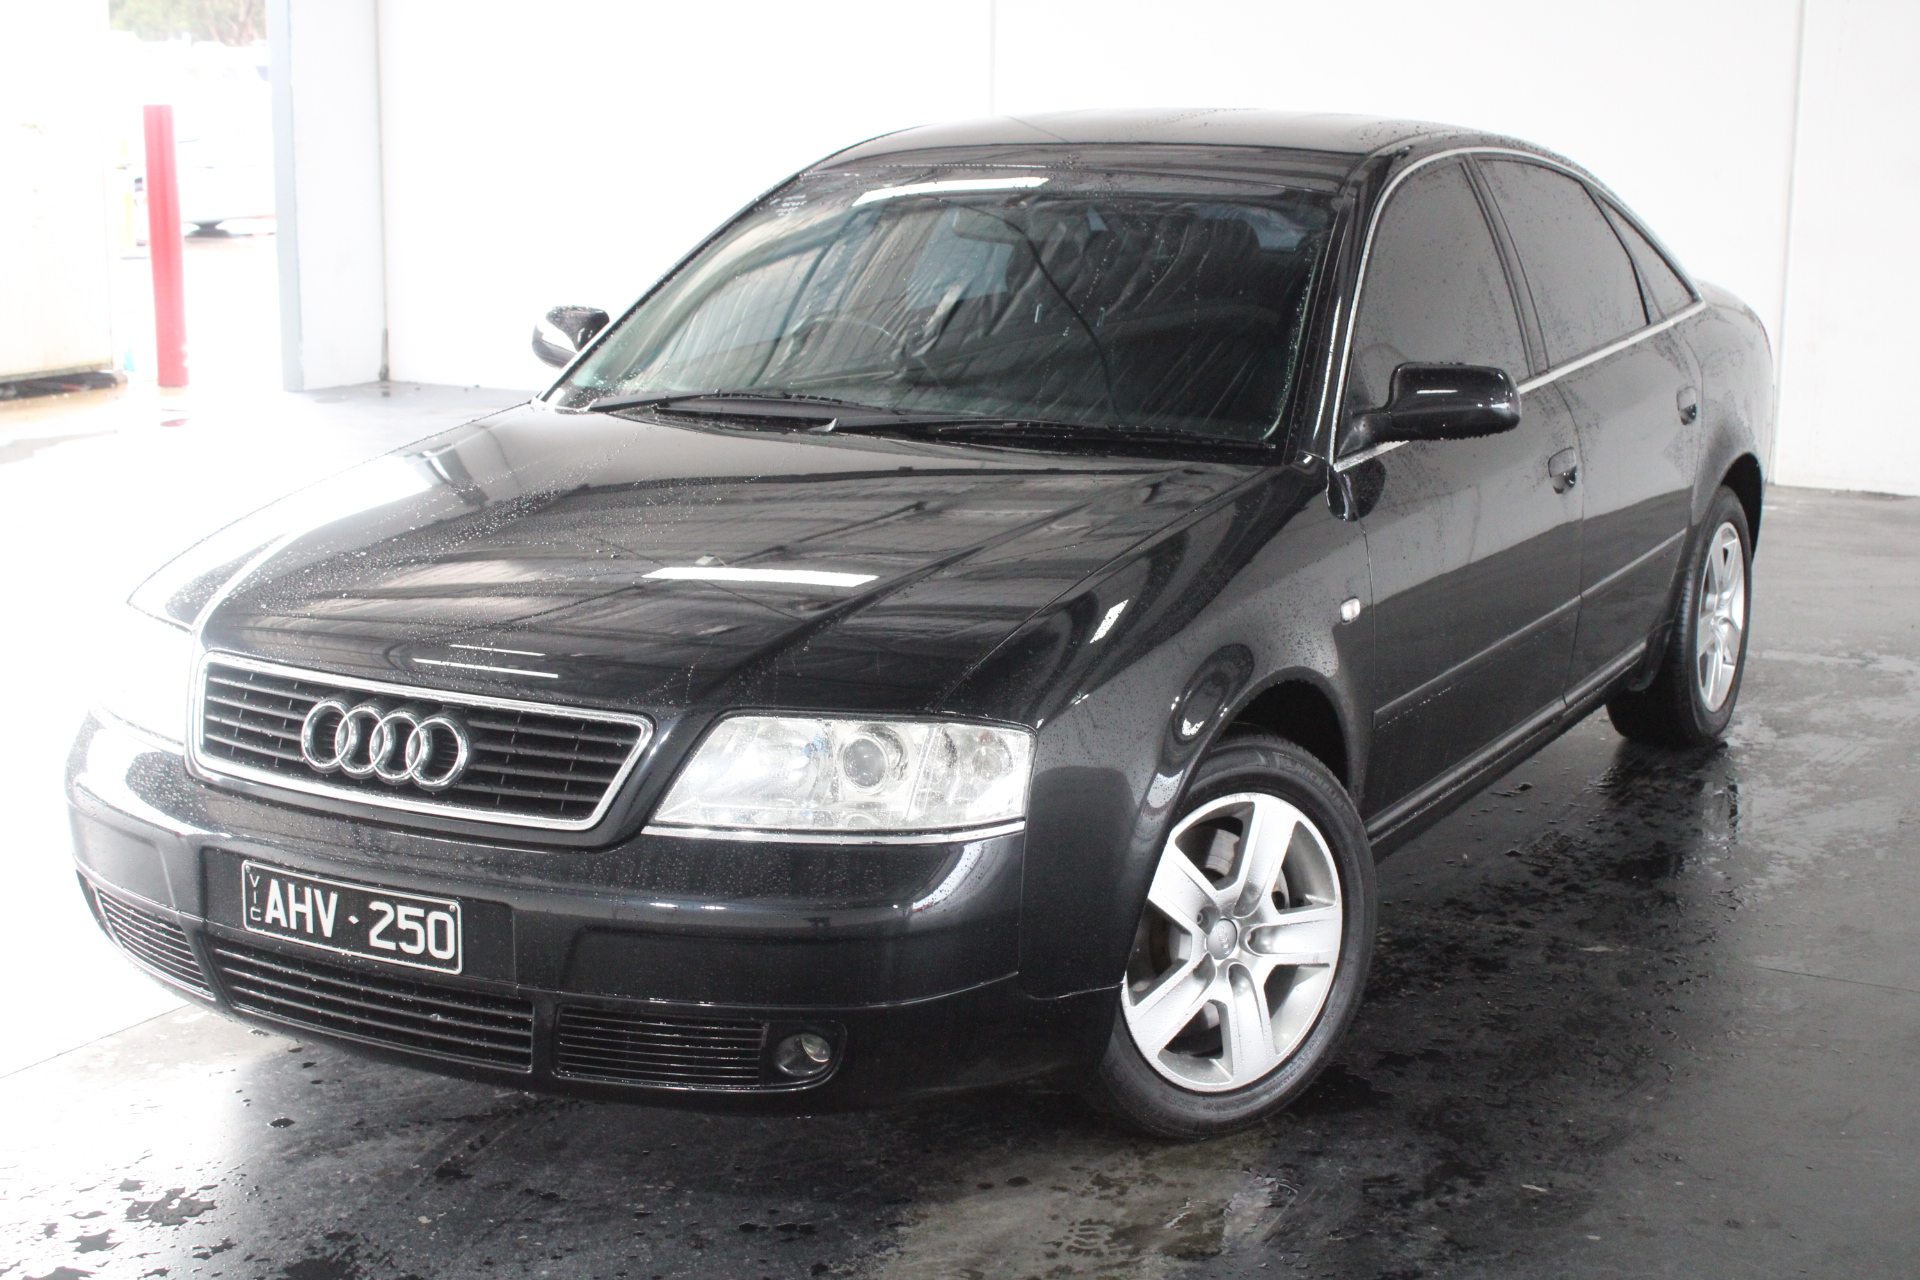 2000 Audi A6 2.4 V6 C5 Automatic Sedan (Statutory Write Off)